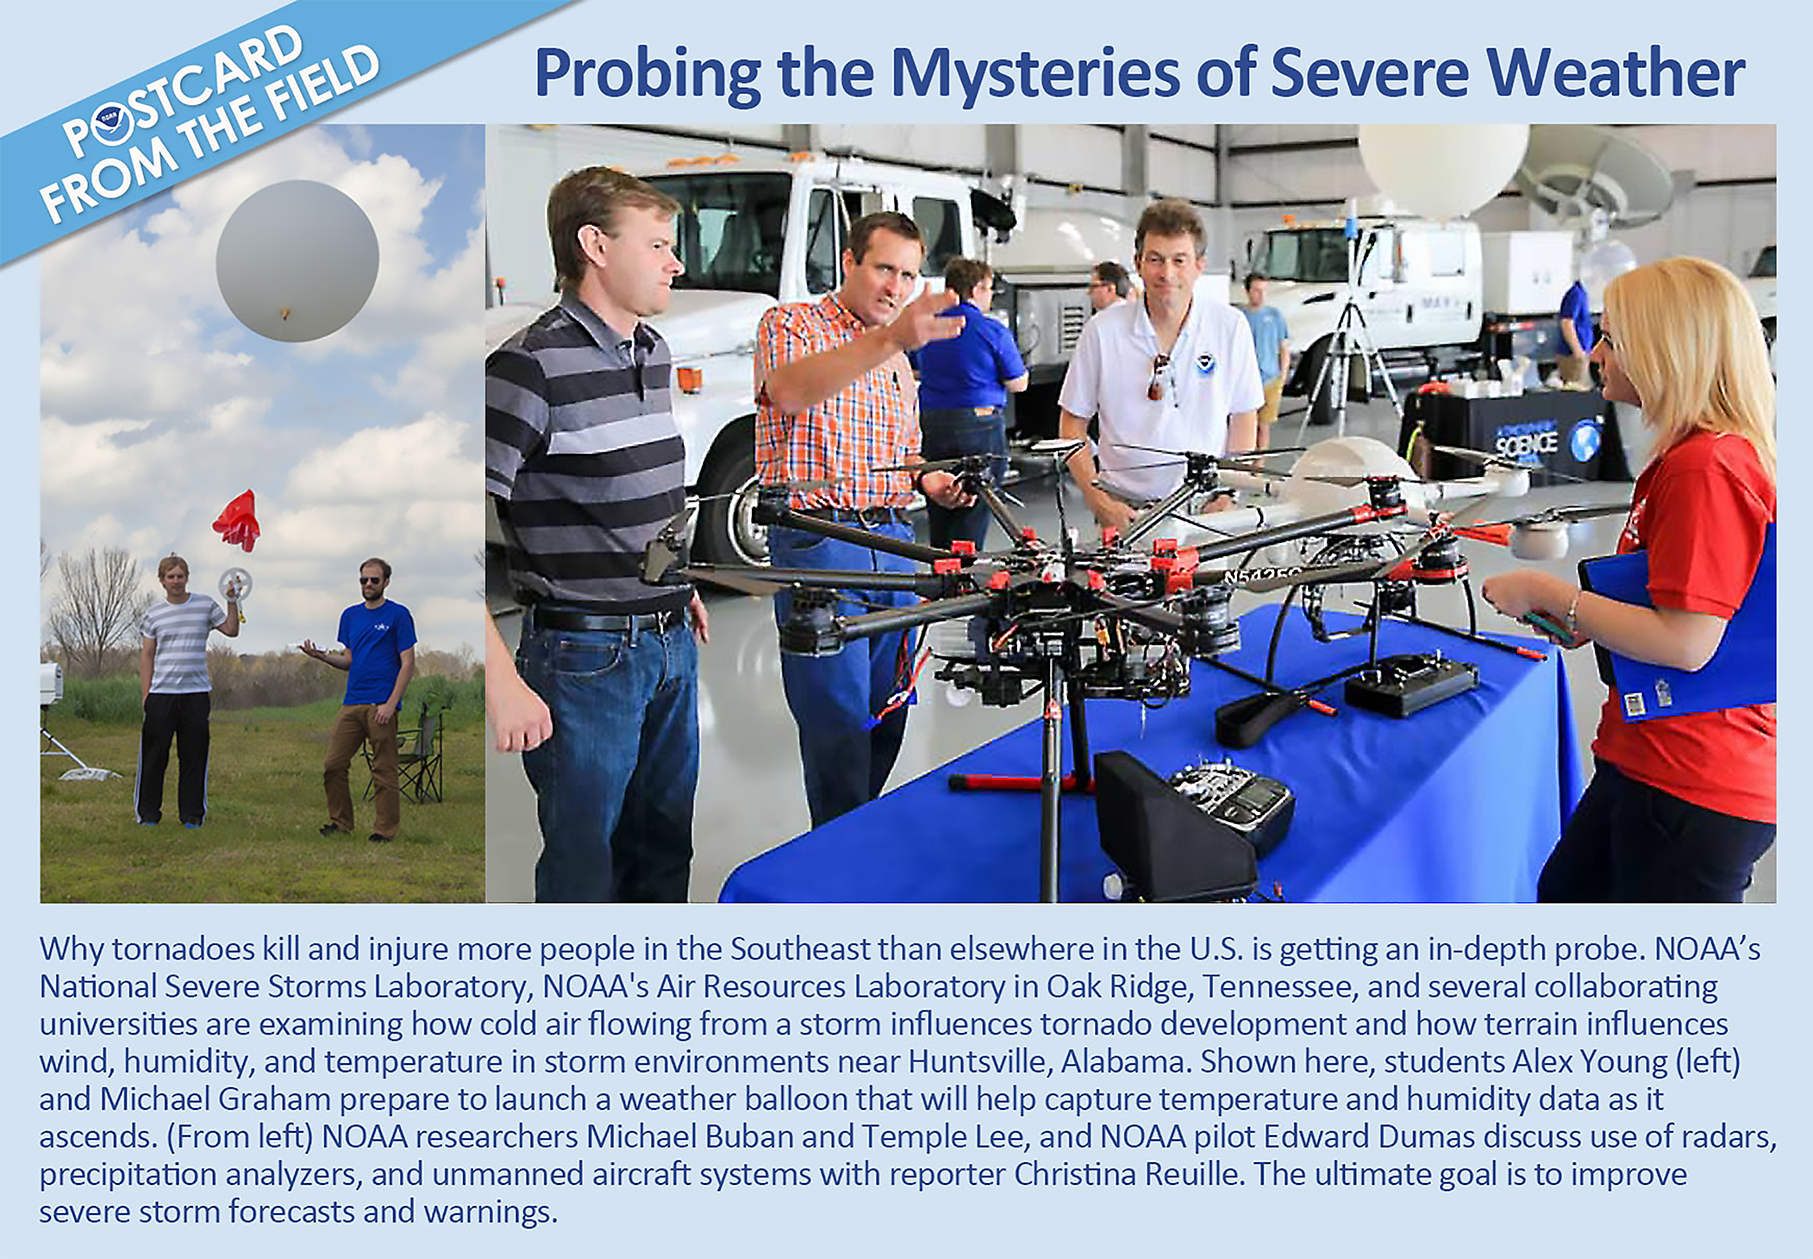 POSTCARD FROM THE FIELD: Probing the Mysteries of Severe Weather